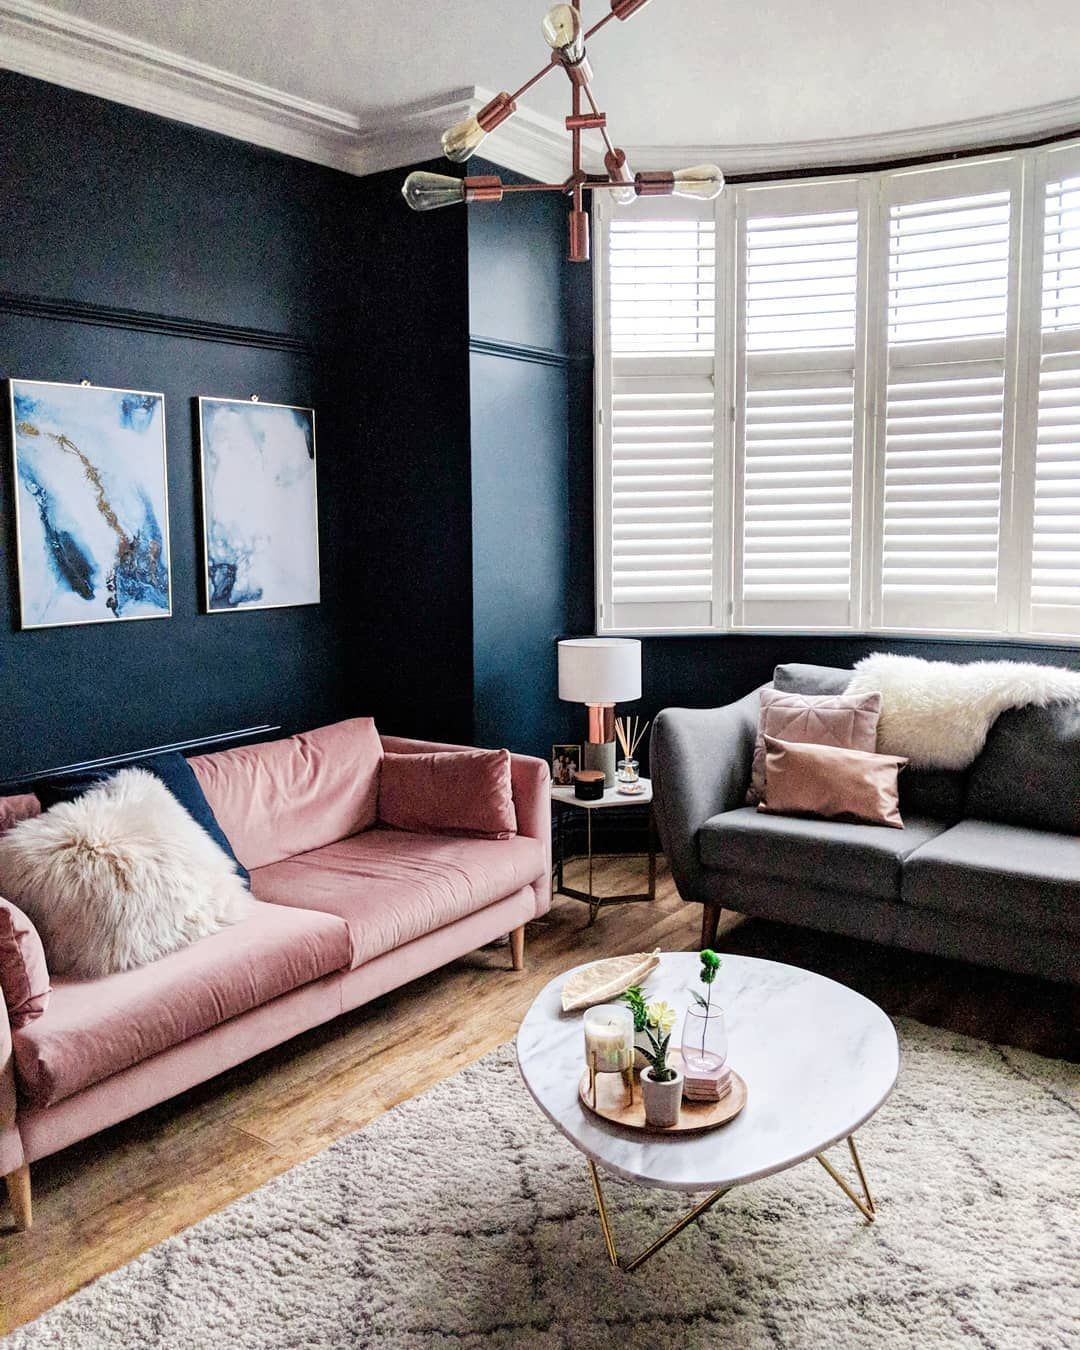 76 Likes 4 Comments My Edwardian House Renovation My London Home On Instagram The Ang Pink Couch Living Room Pink Living Room Blue And Pink Living Room